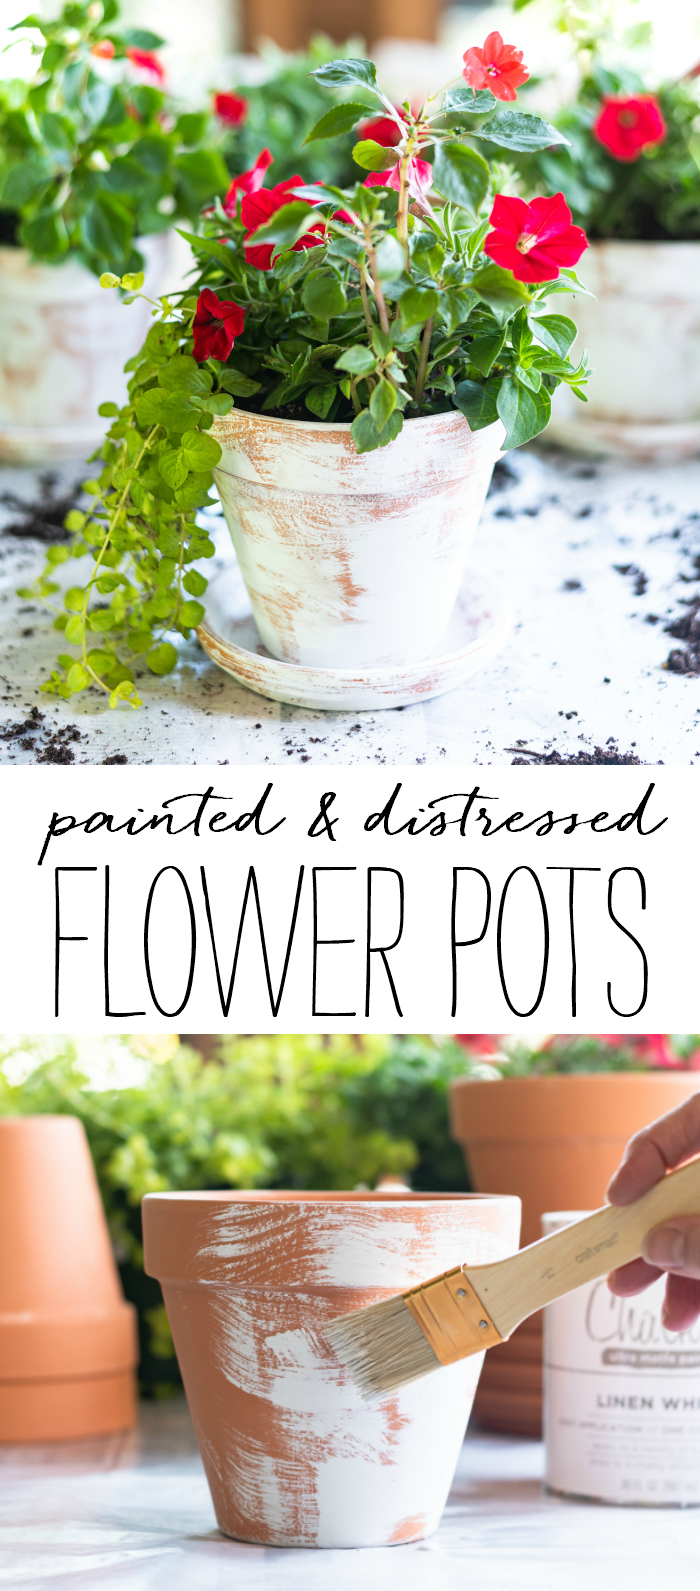 Easy Distressed Terracotta Pots - How To Age Flower Pots with Chalk Paint - DIY Aged Terracotta Flower Pots